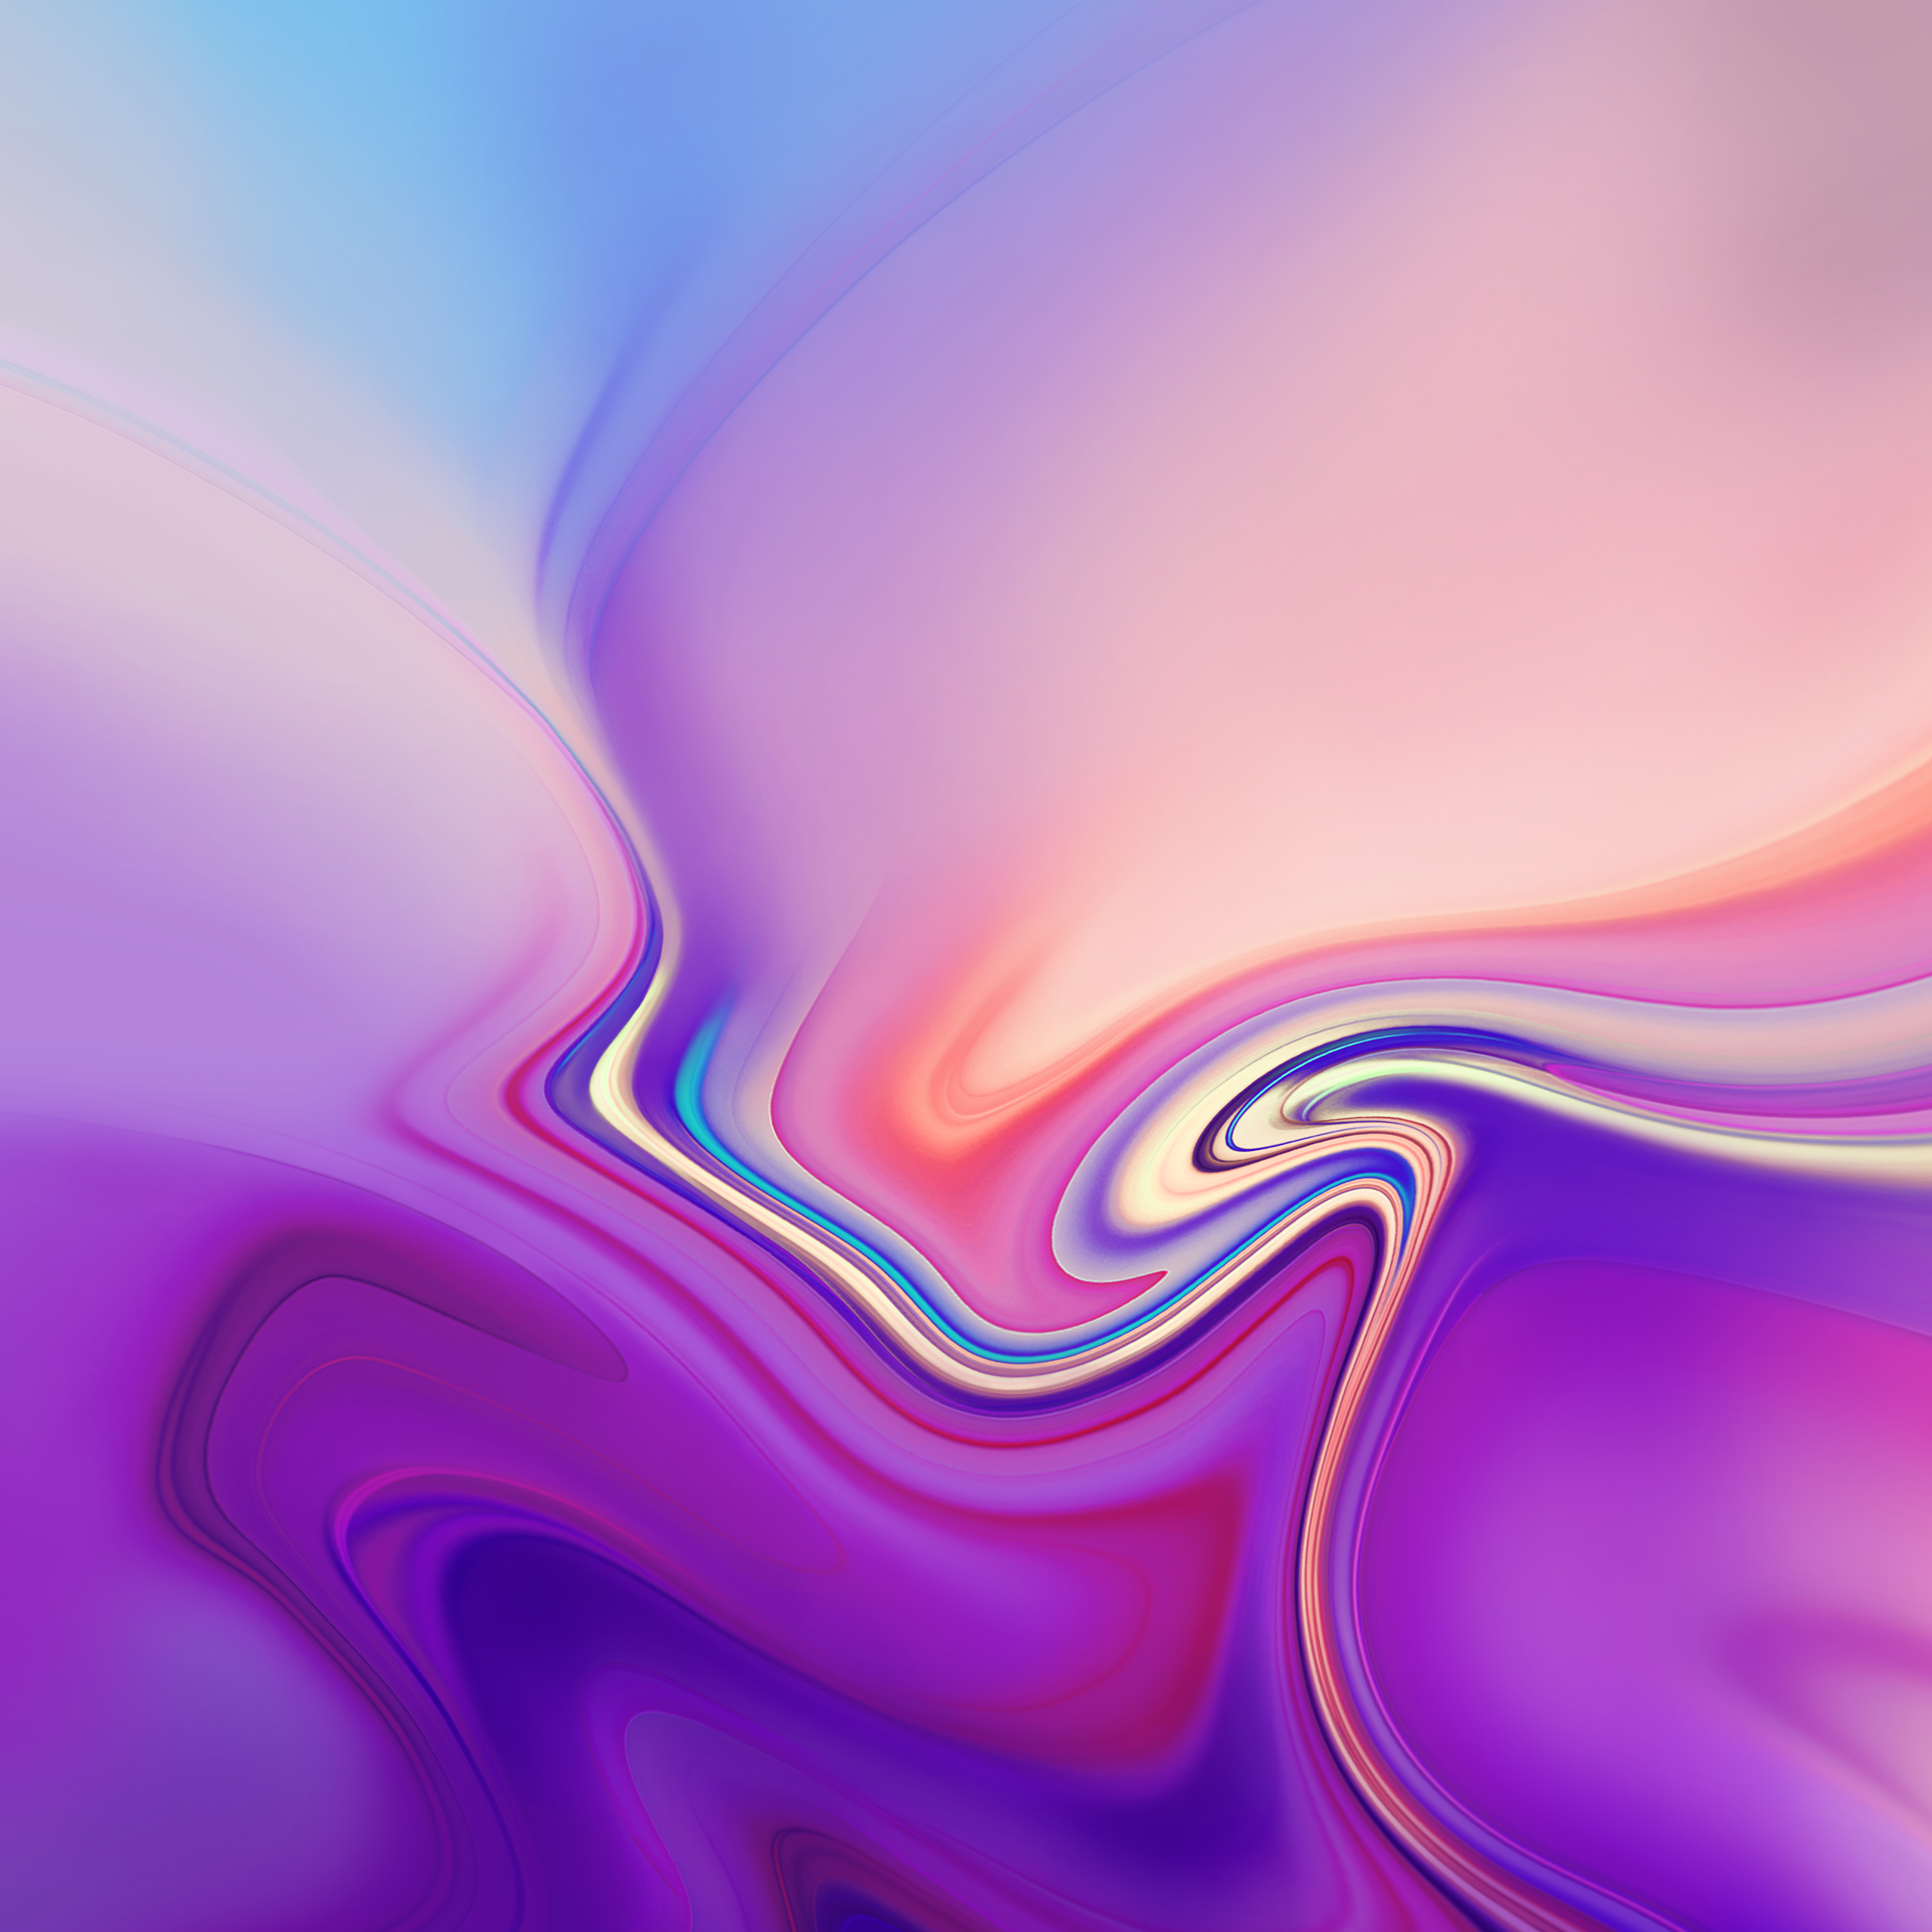 Wallpapers: Download The Official Galaxy Tab S4 Wallpapers Here